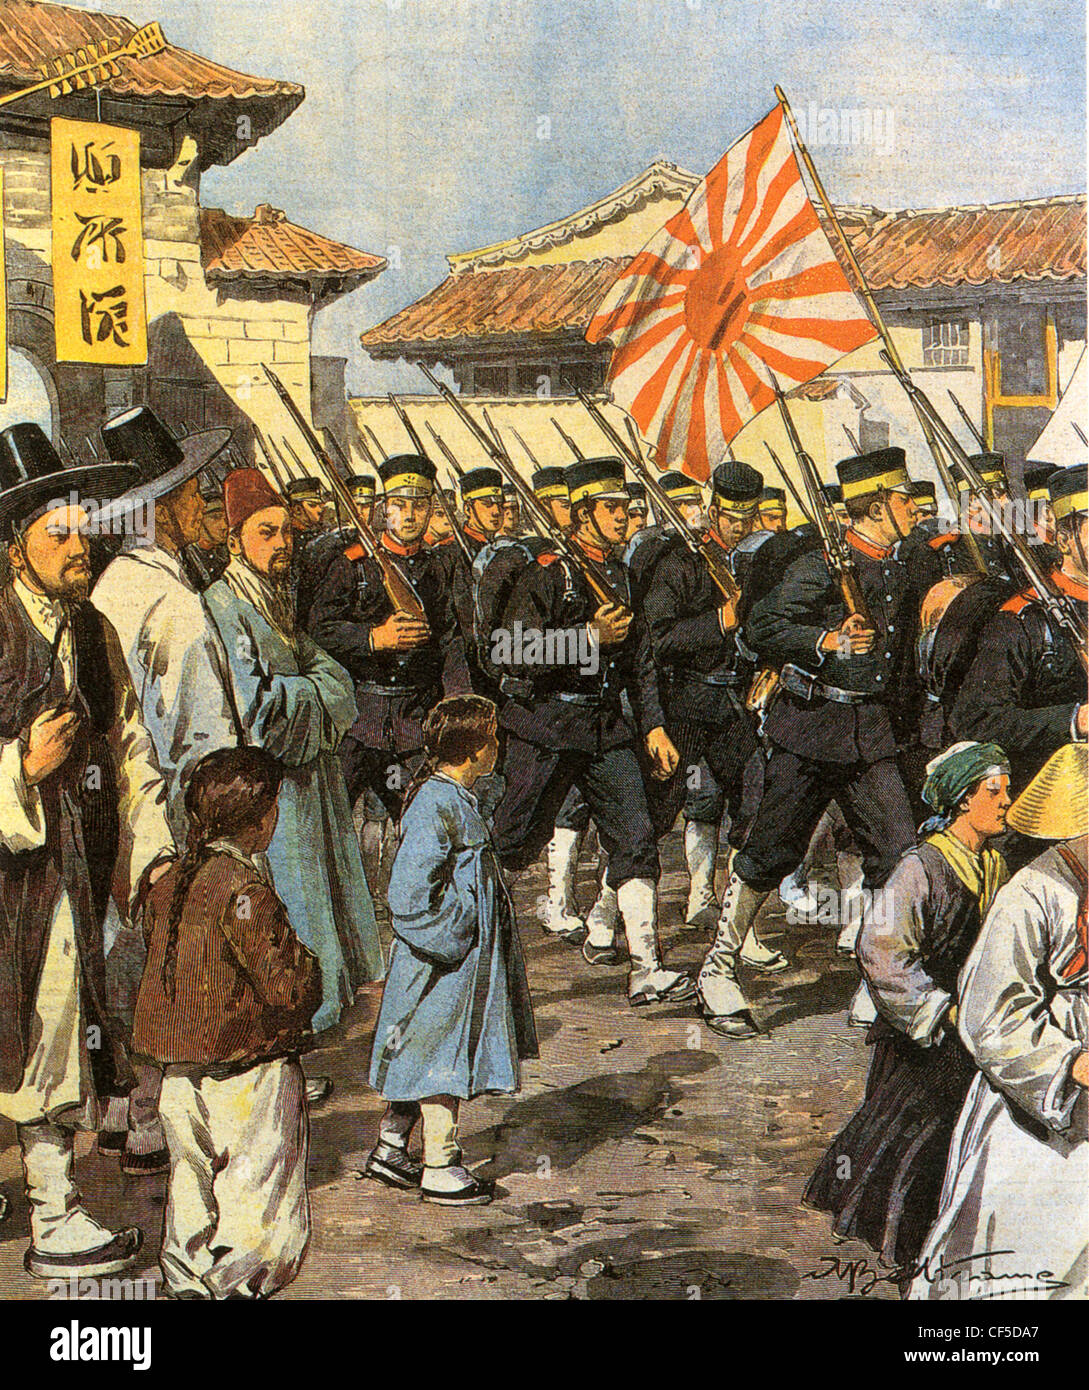 RUSSO-JAPANESE WAR - Japanese naval troops land in Korea in 1904 - Stock Image